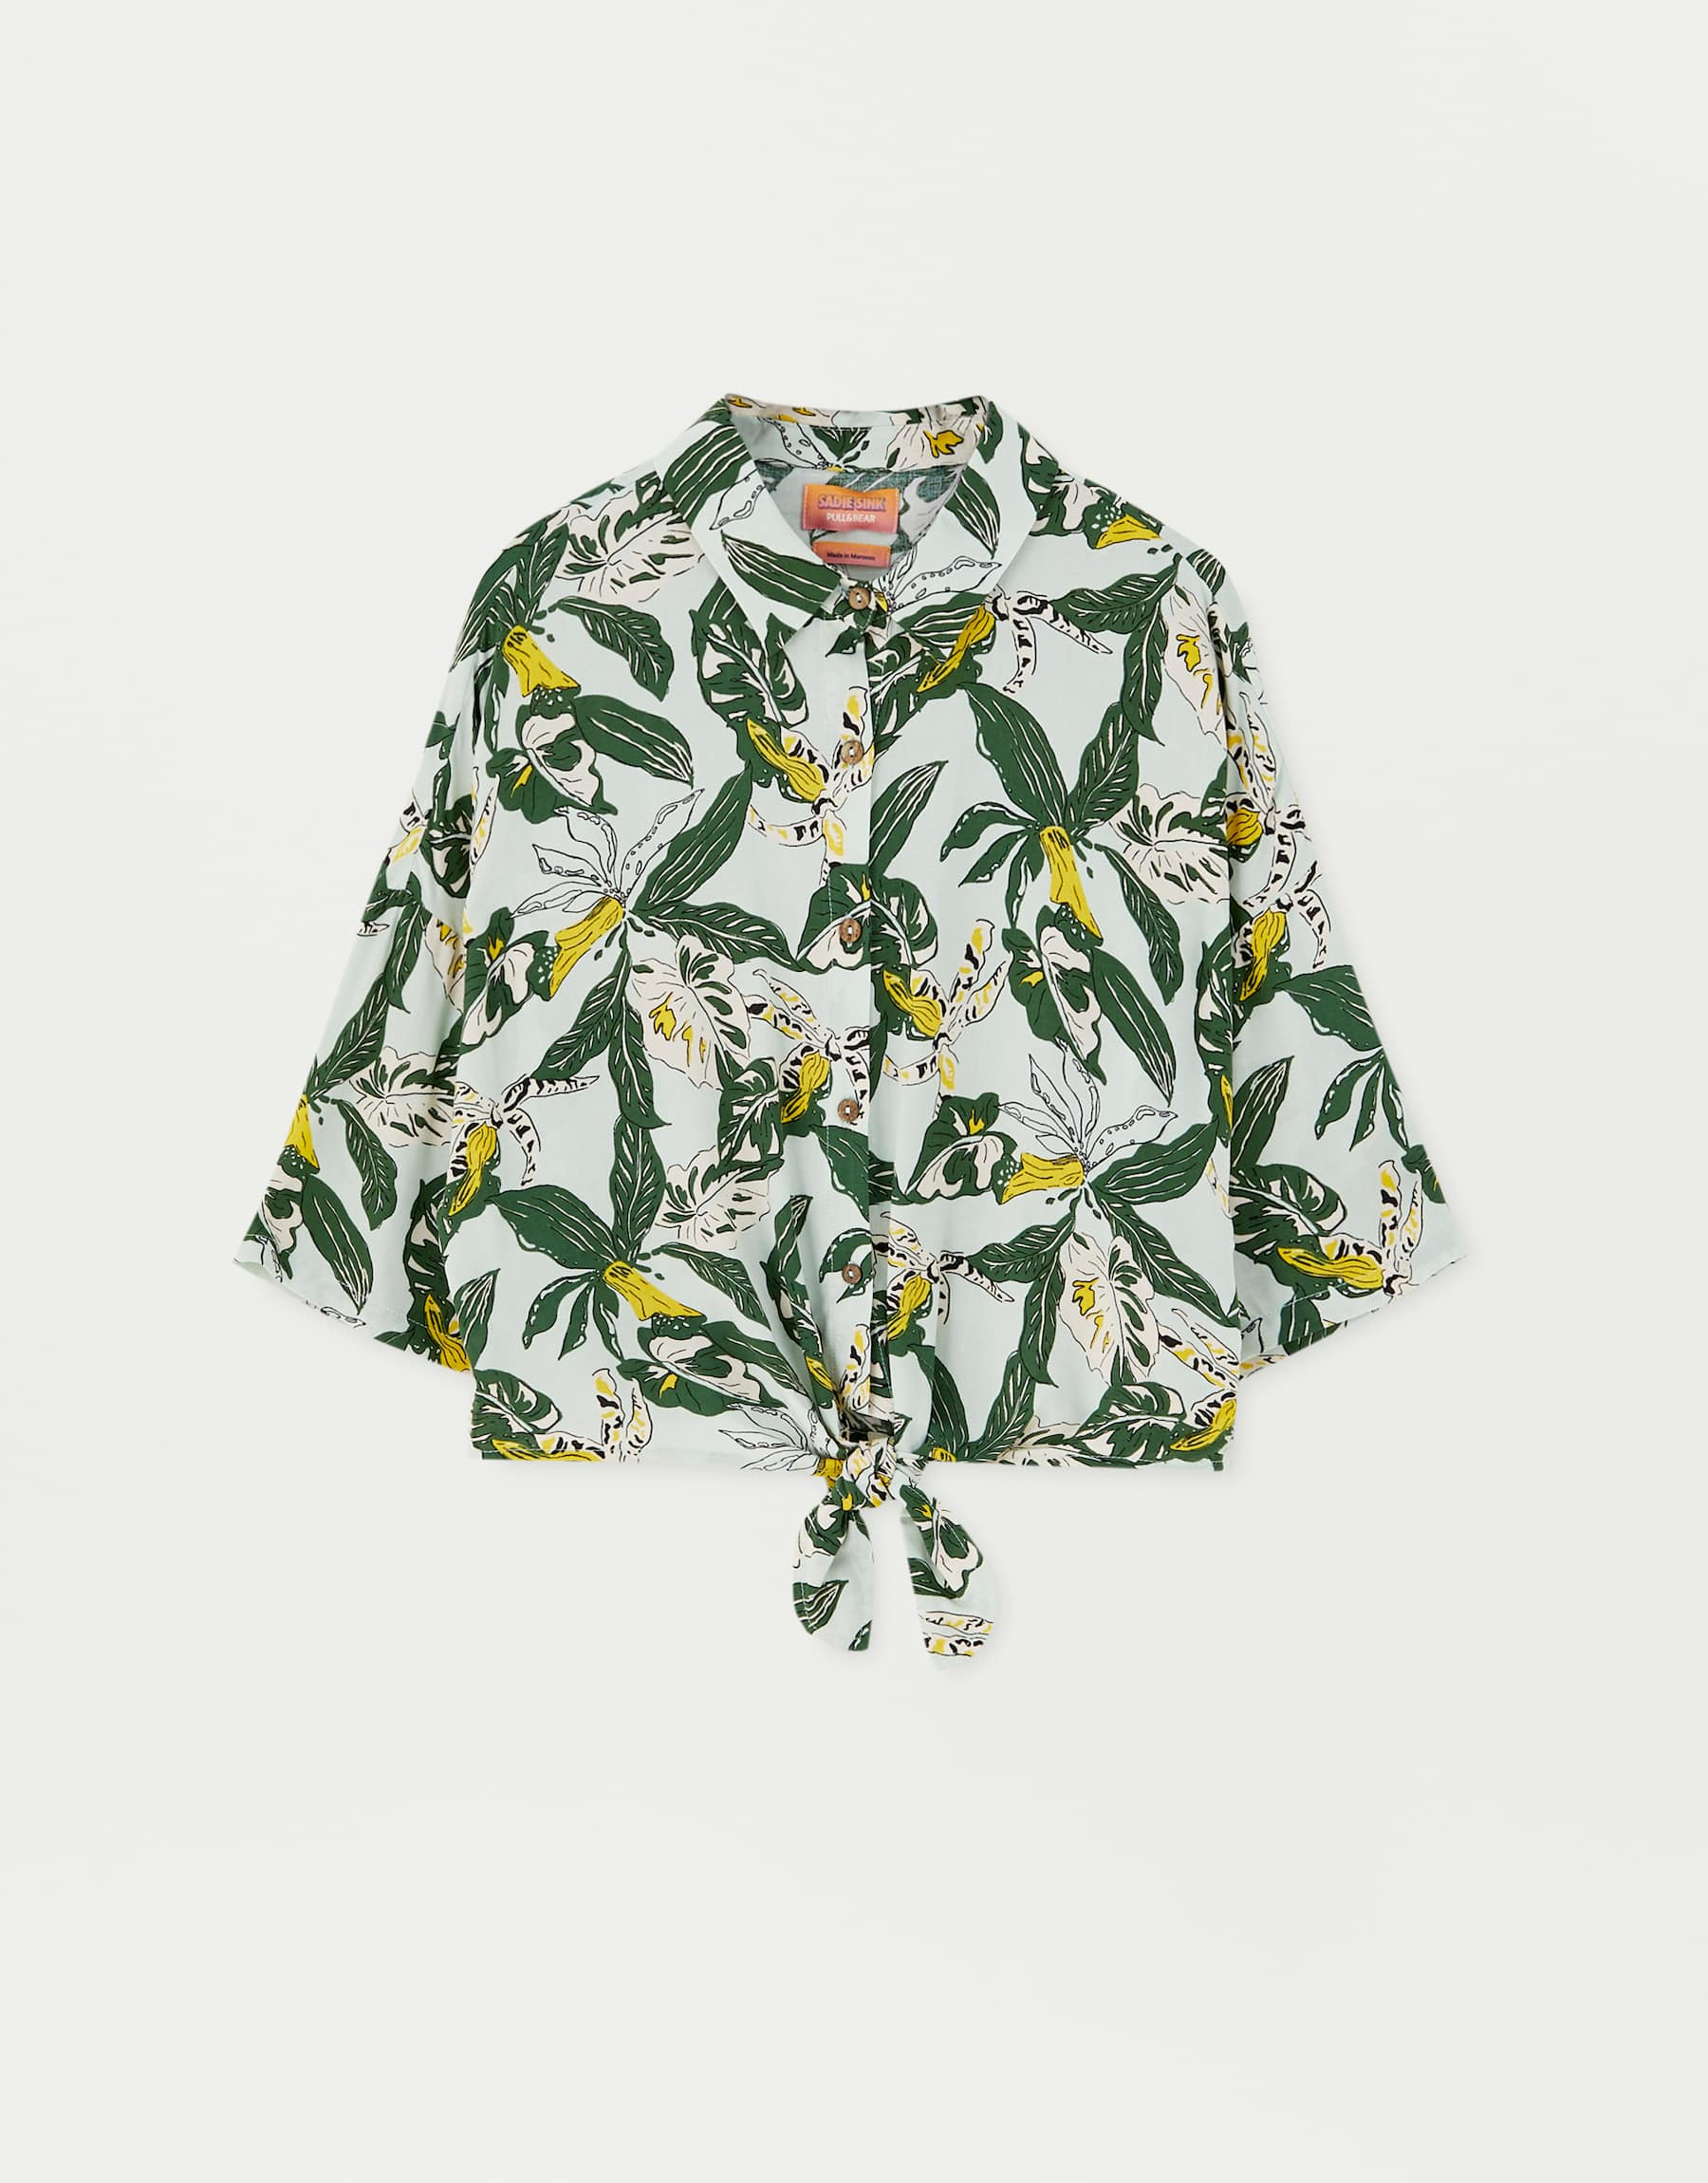 Sadie Sink Leaf Print Shirt, $45.90